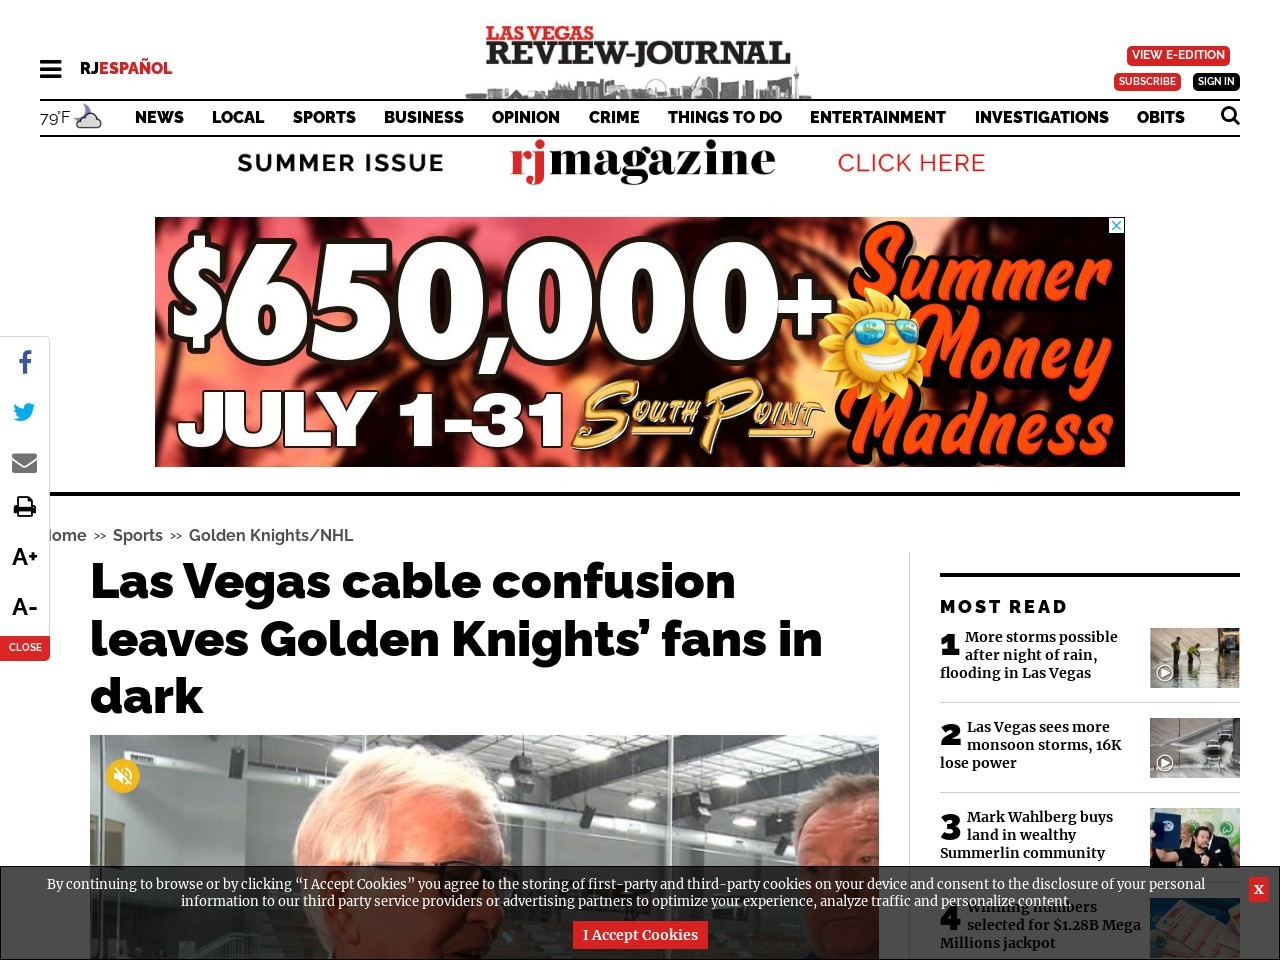 Las Vegas cable confusion leaves Golden Knights' fans in dark